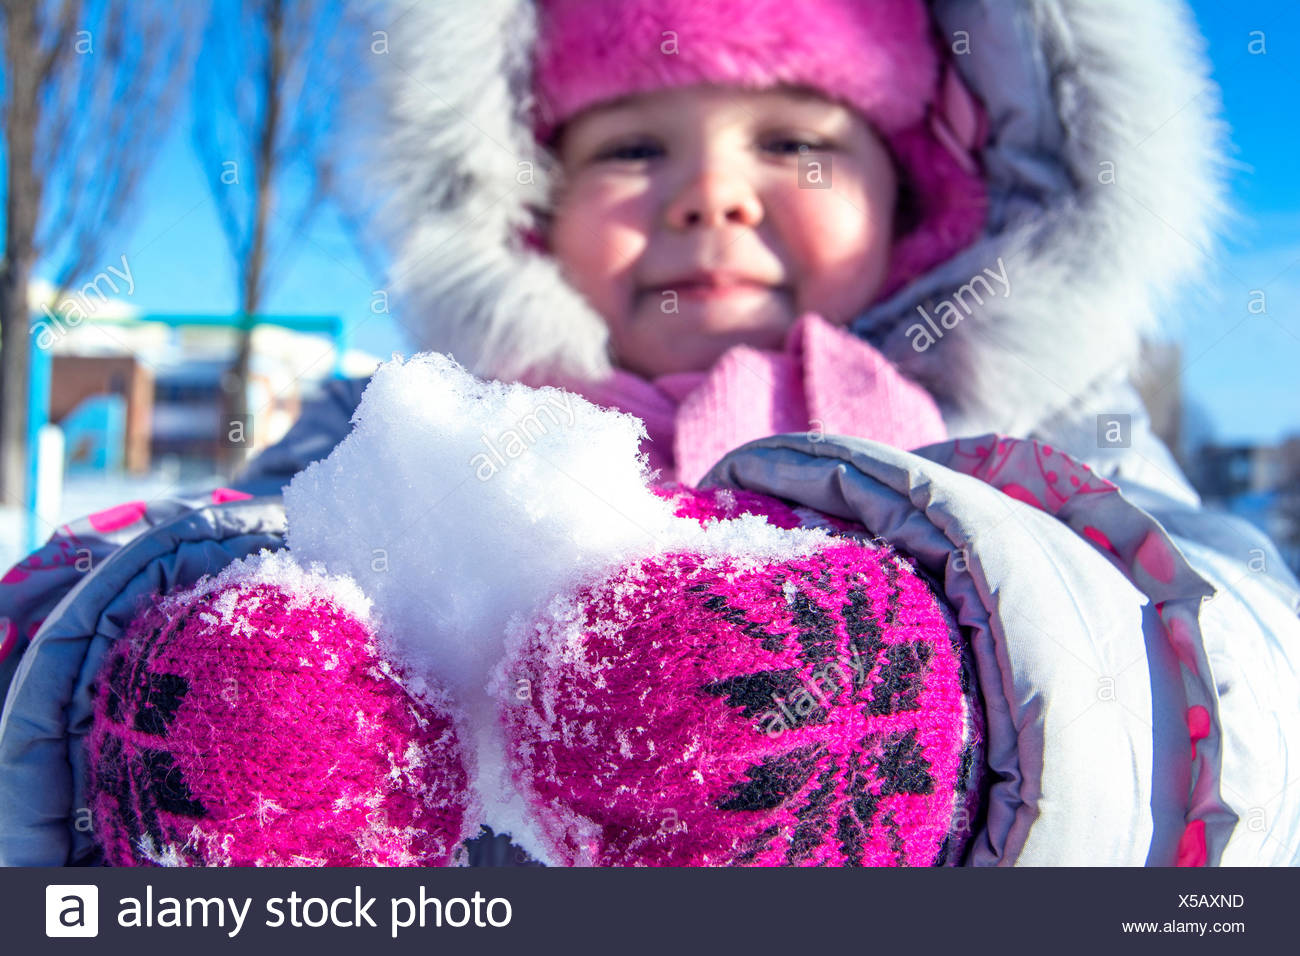 Close-Up Of Child Holding Snow - Stock Image